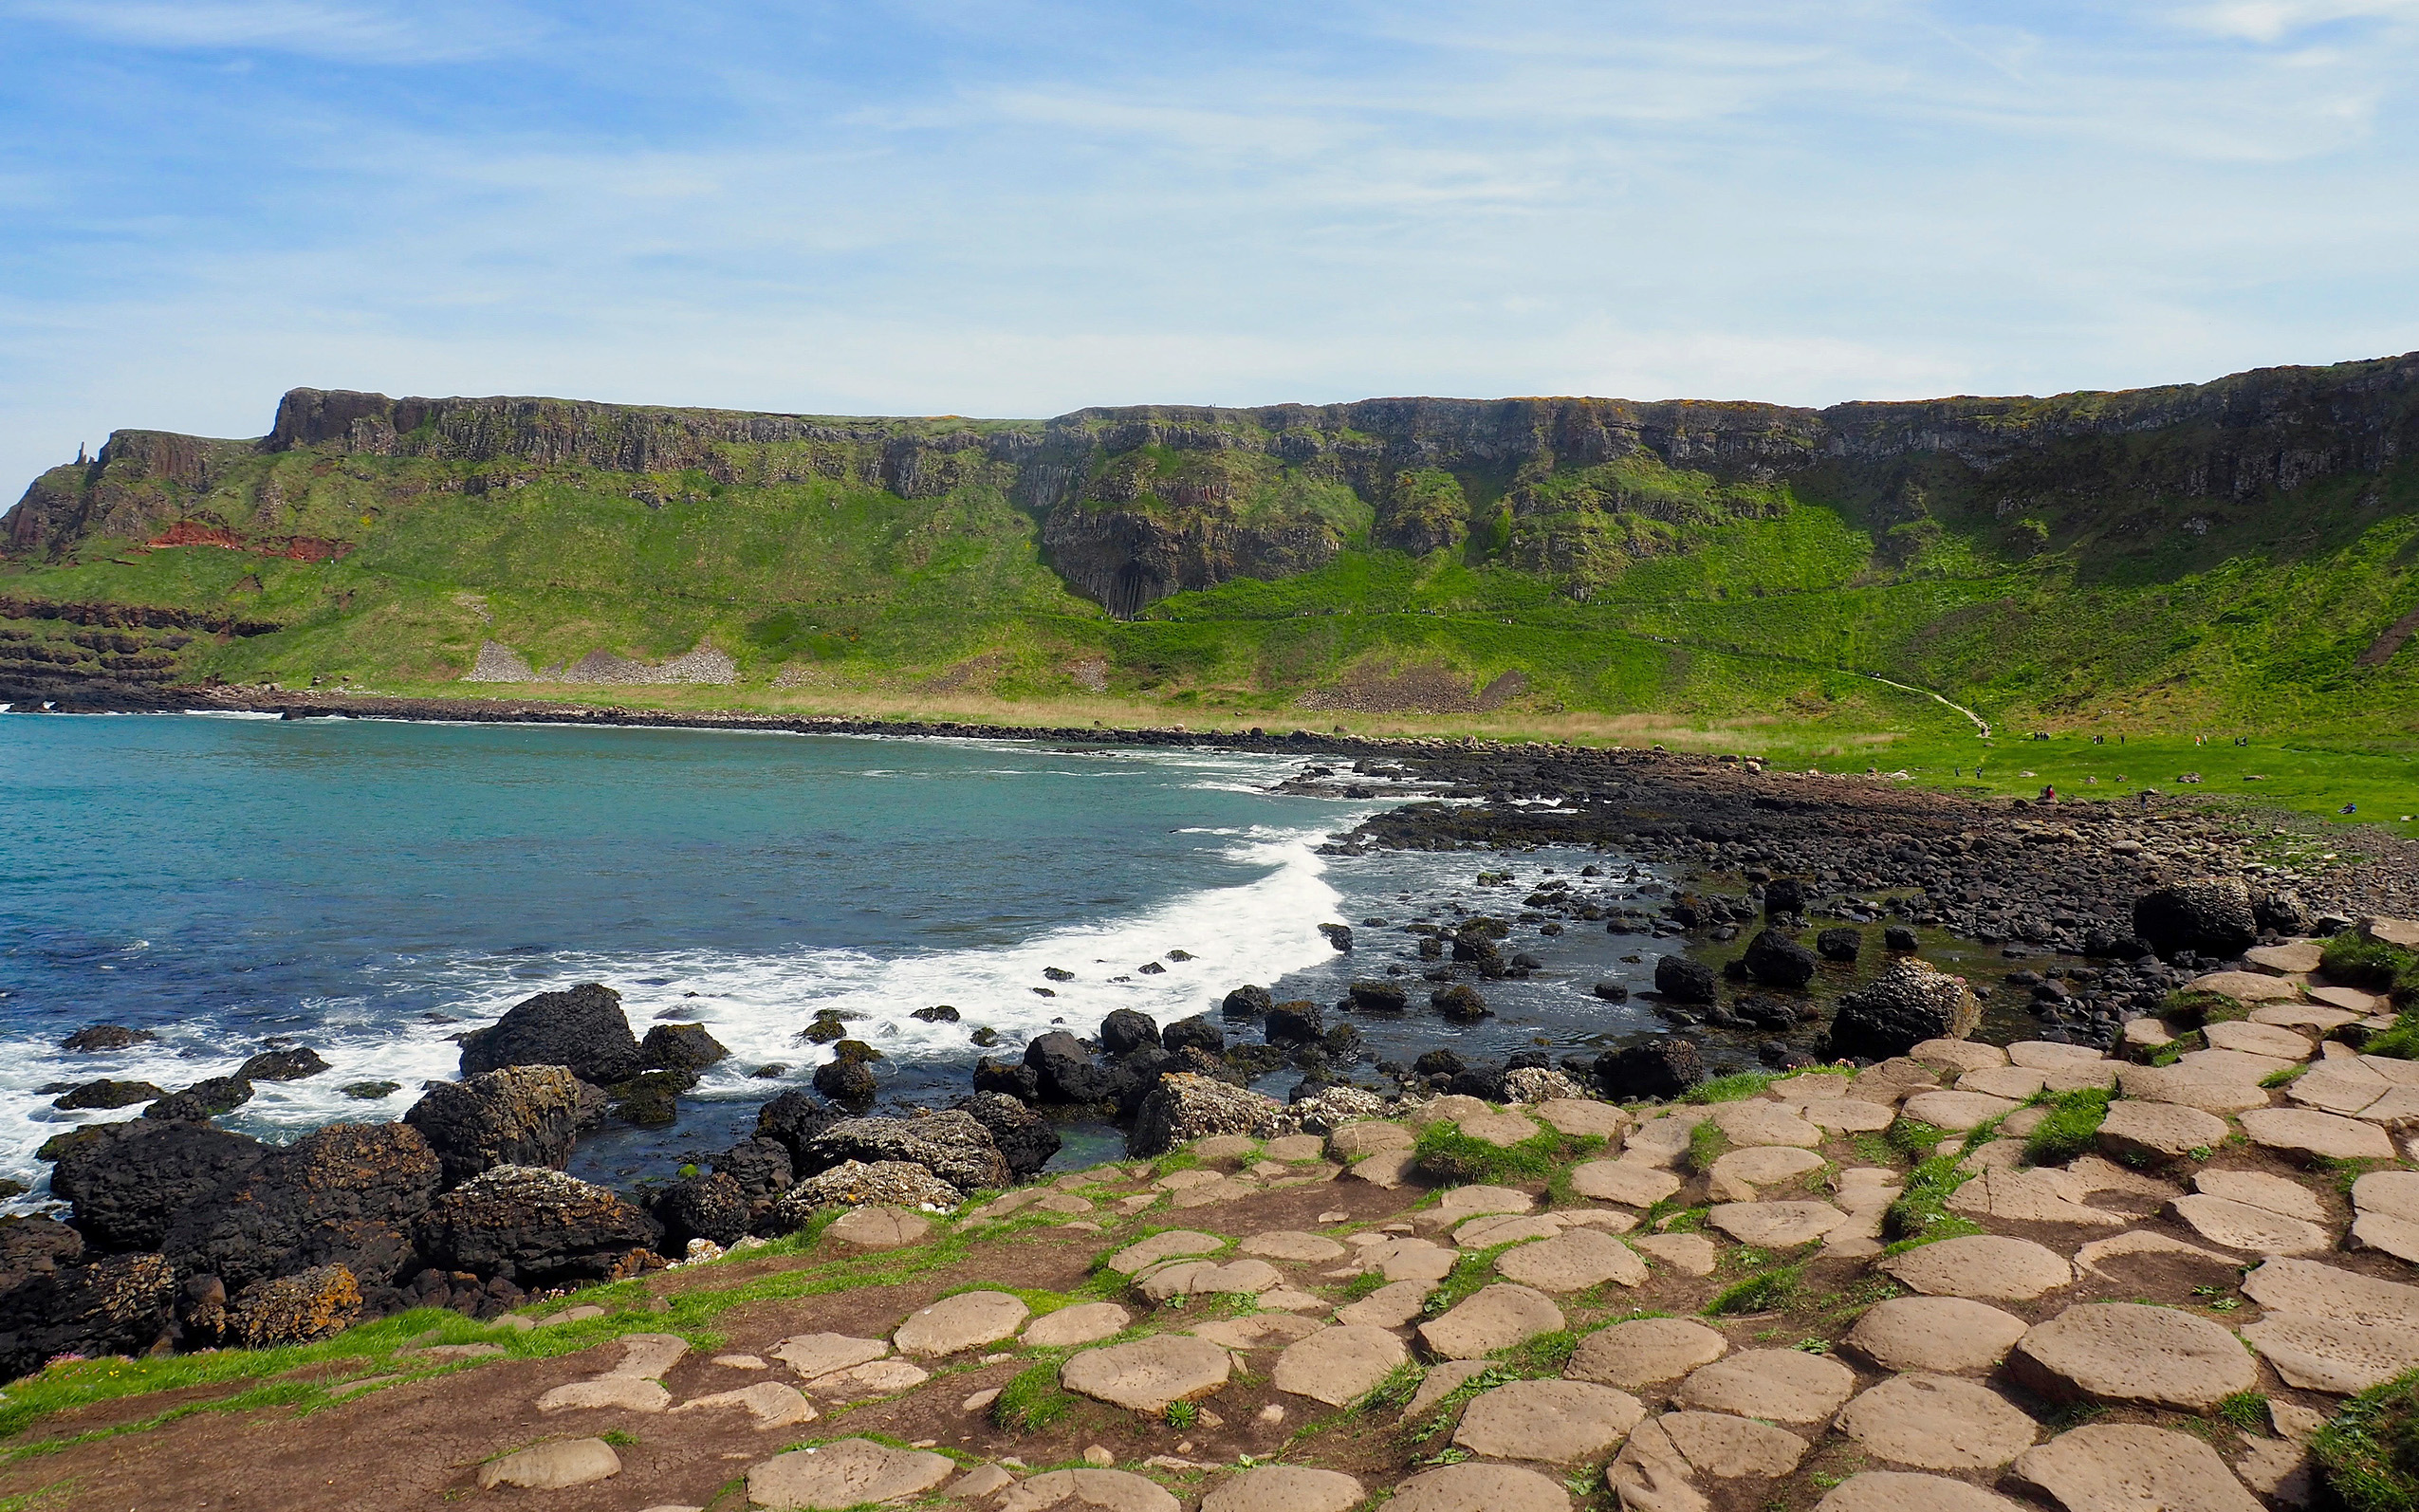 Giants Causeway and the Antrim Coast